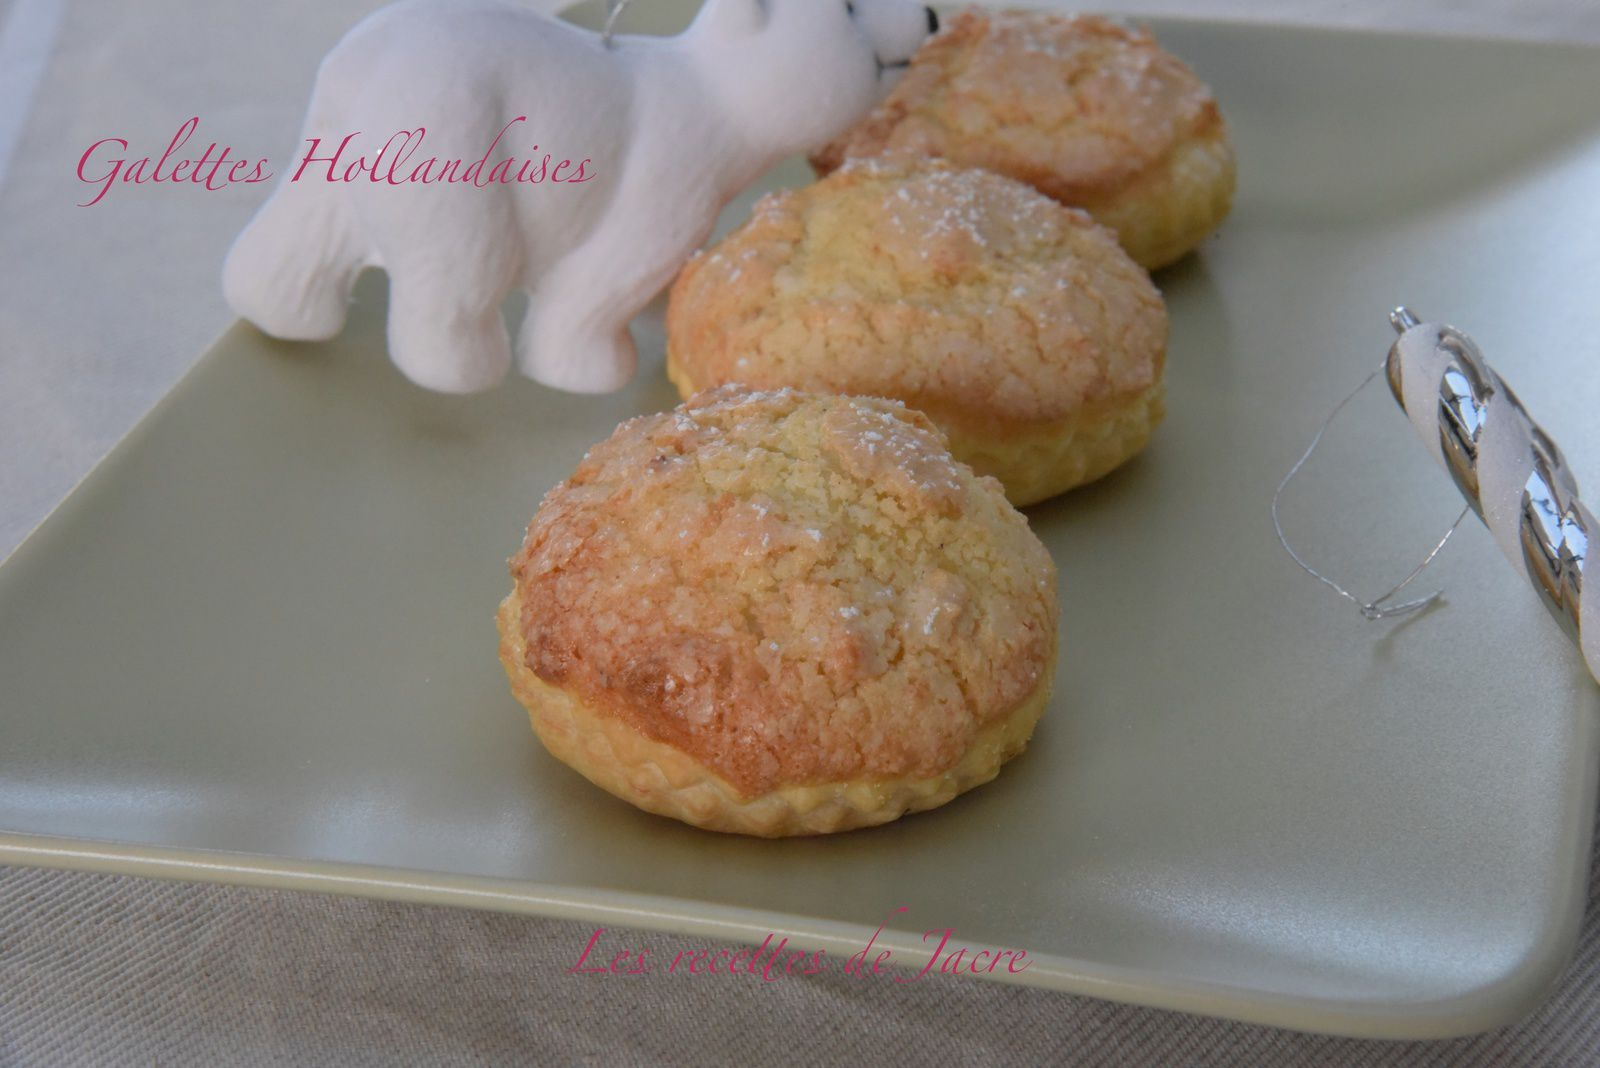 Galettes Hollandaises